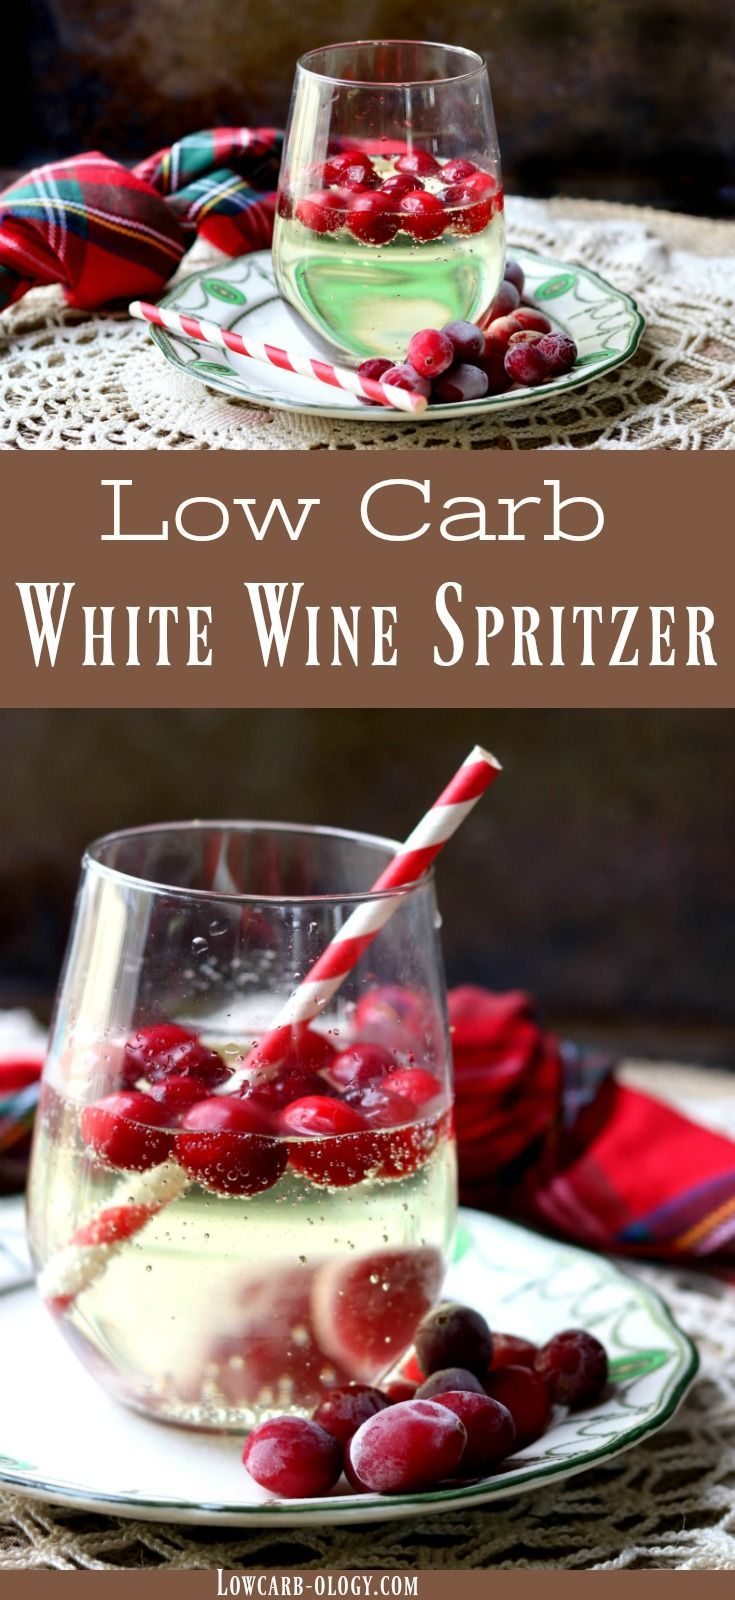 Low Carb White Wine Spritzer With Pineapple Vodka Is Low Carb Perfect For Holiday Celebrations Light An White Wine Spritzer Wine Spritzer Low Carb Cocktails